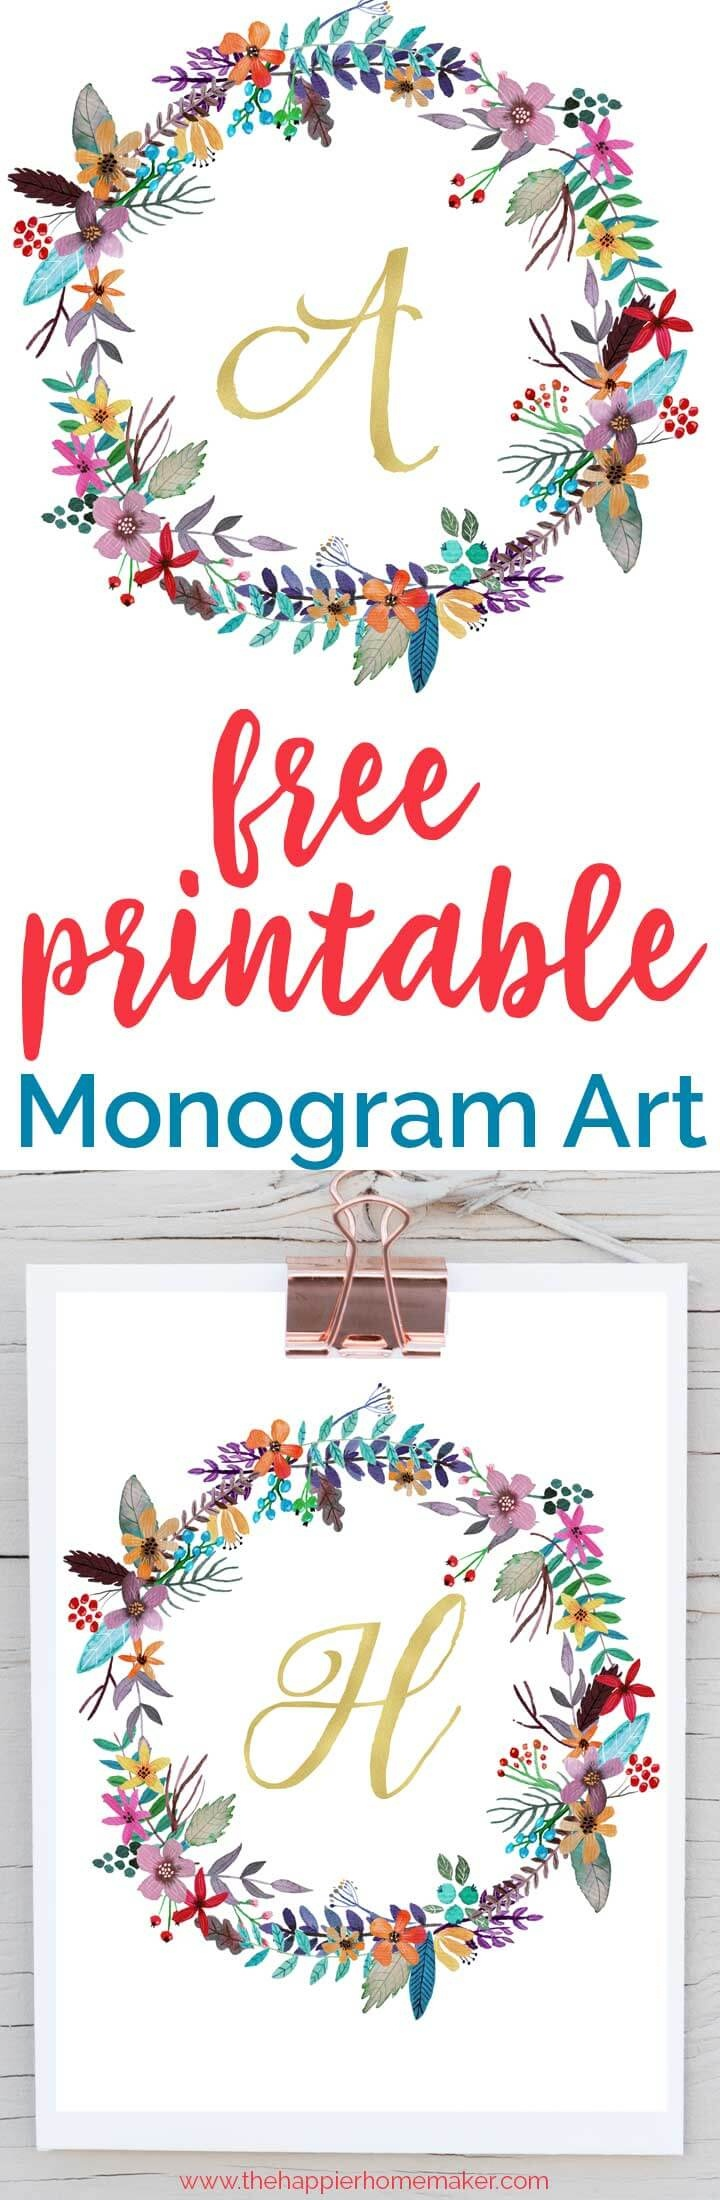 Free Printable Monogram Art | The Happier Homemaker - Free Printable Monogram